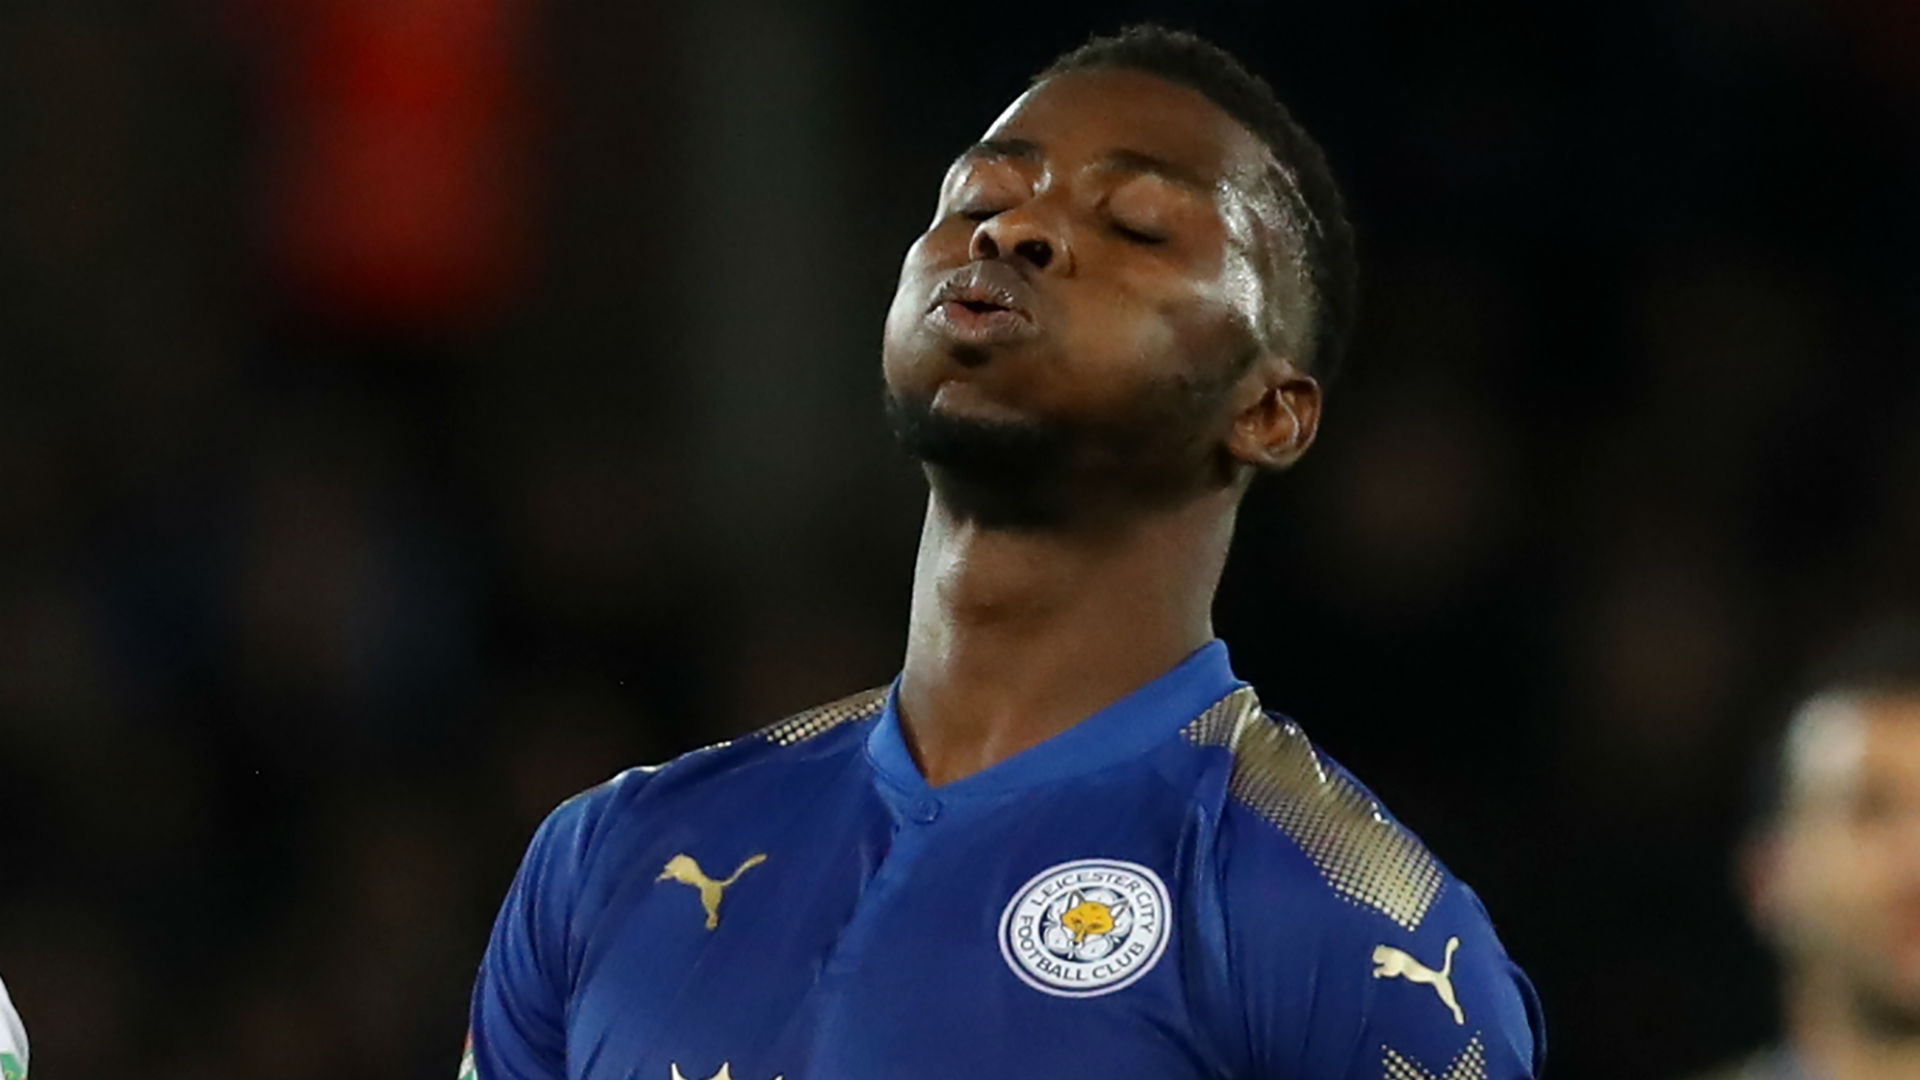 'He is not an outright striker' - Leicester City's use of Iheanacho questioned by Ugbade